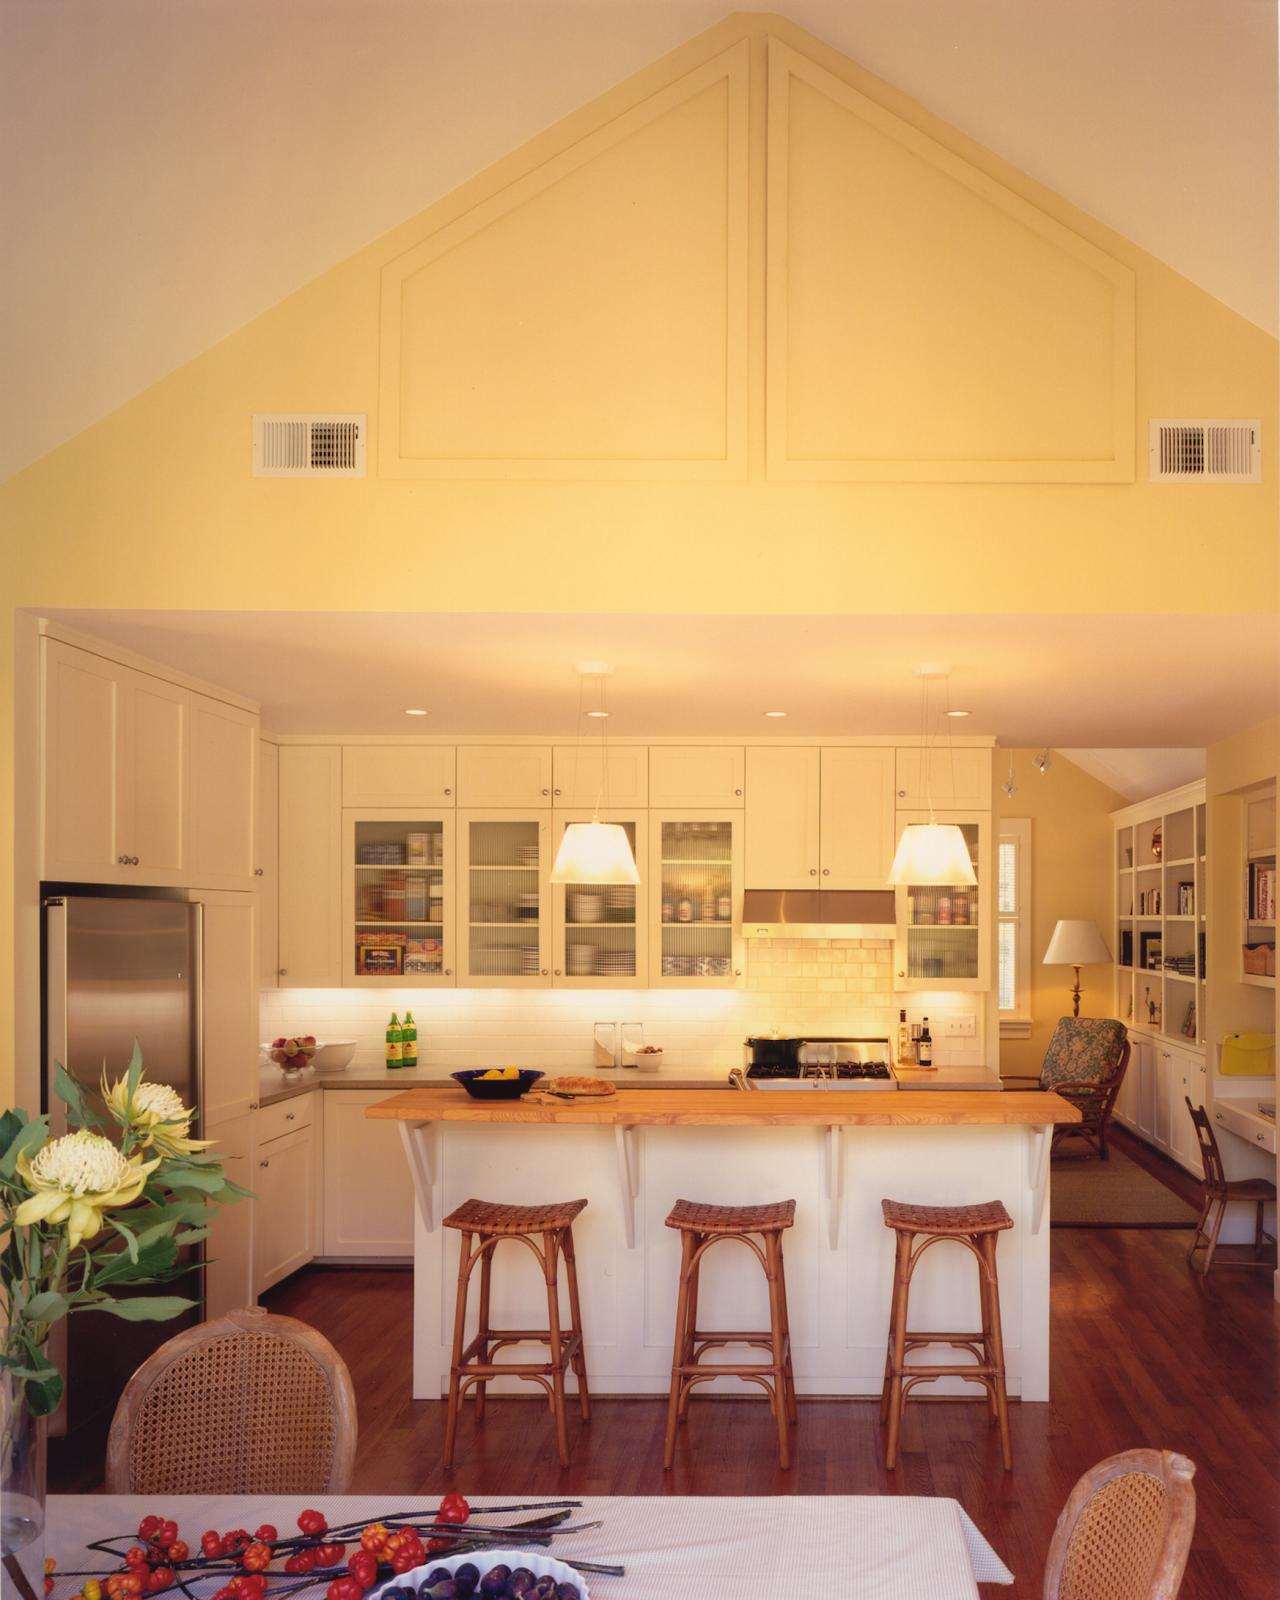 White Kitchen Vaulted Ceiling: Photos